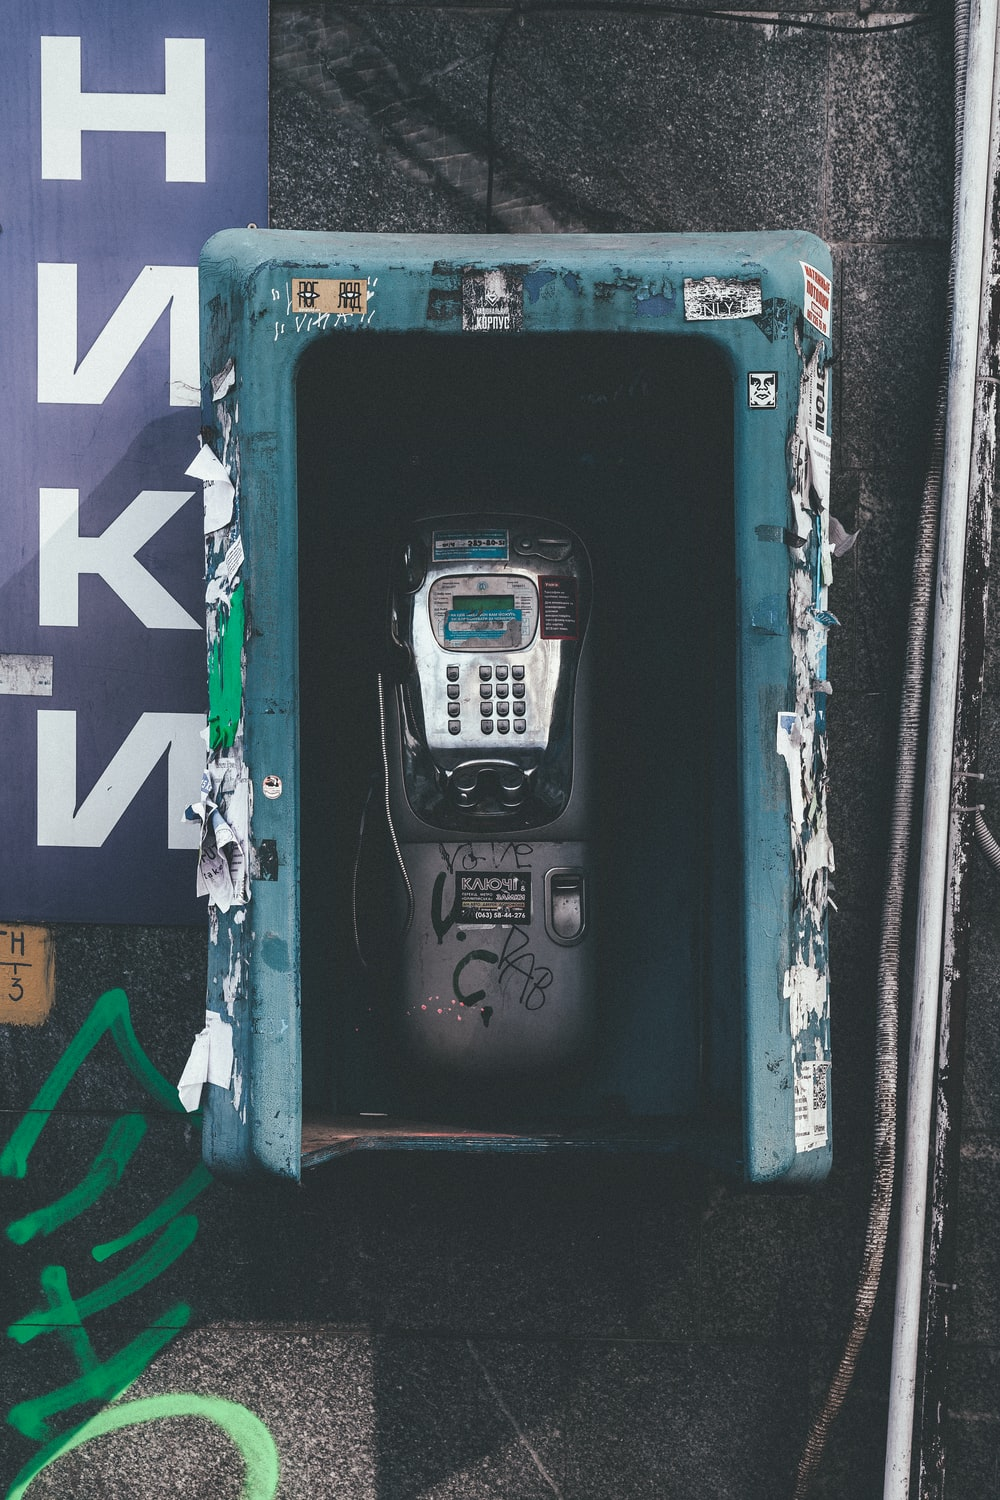 black and gray payphone